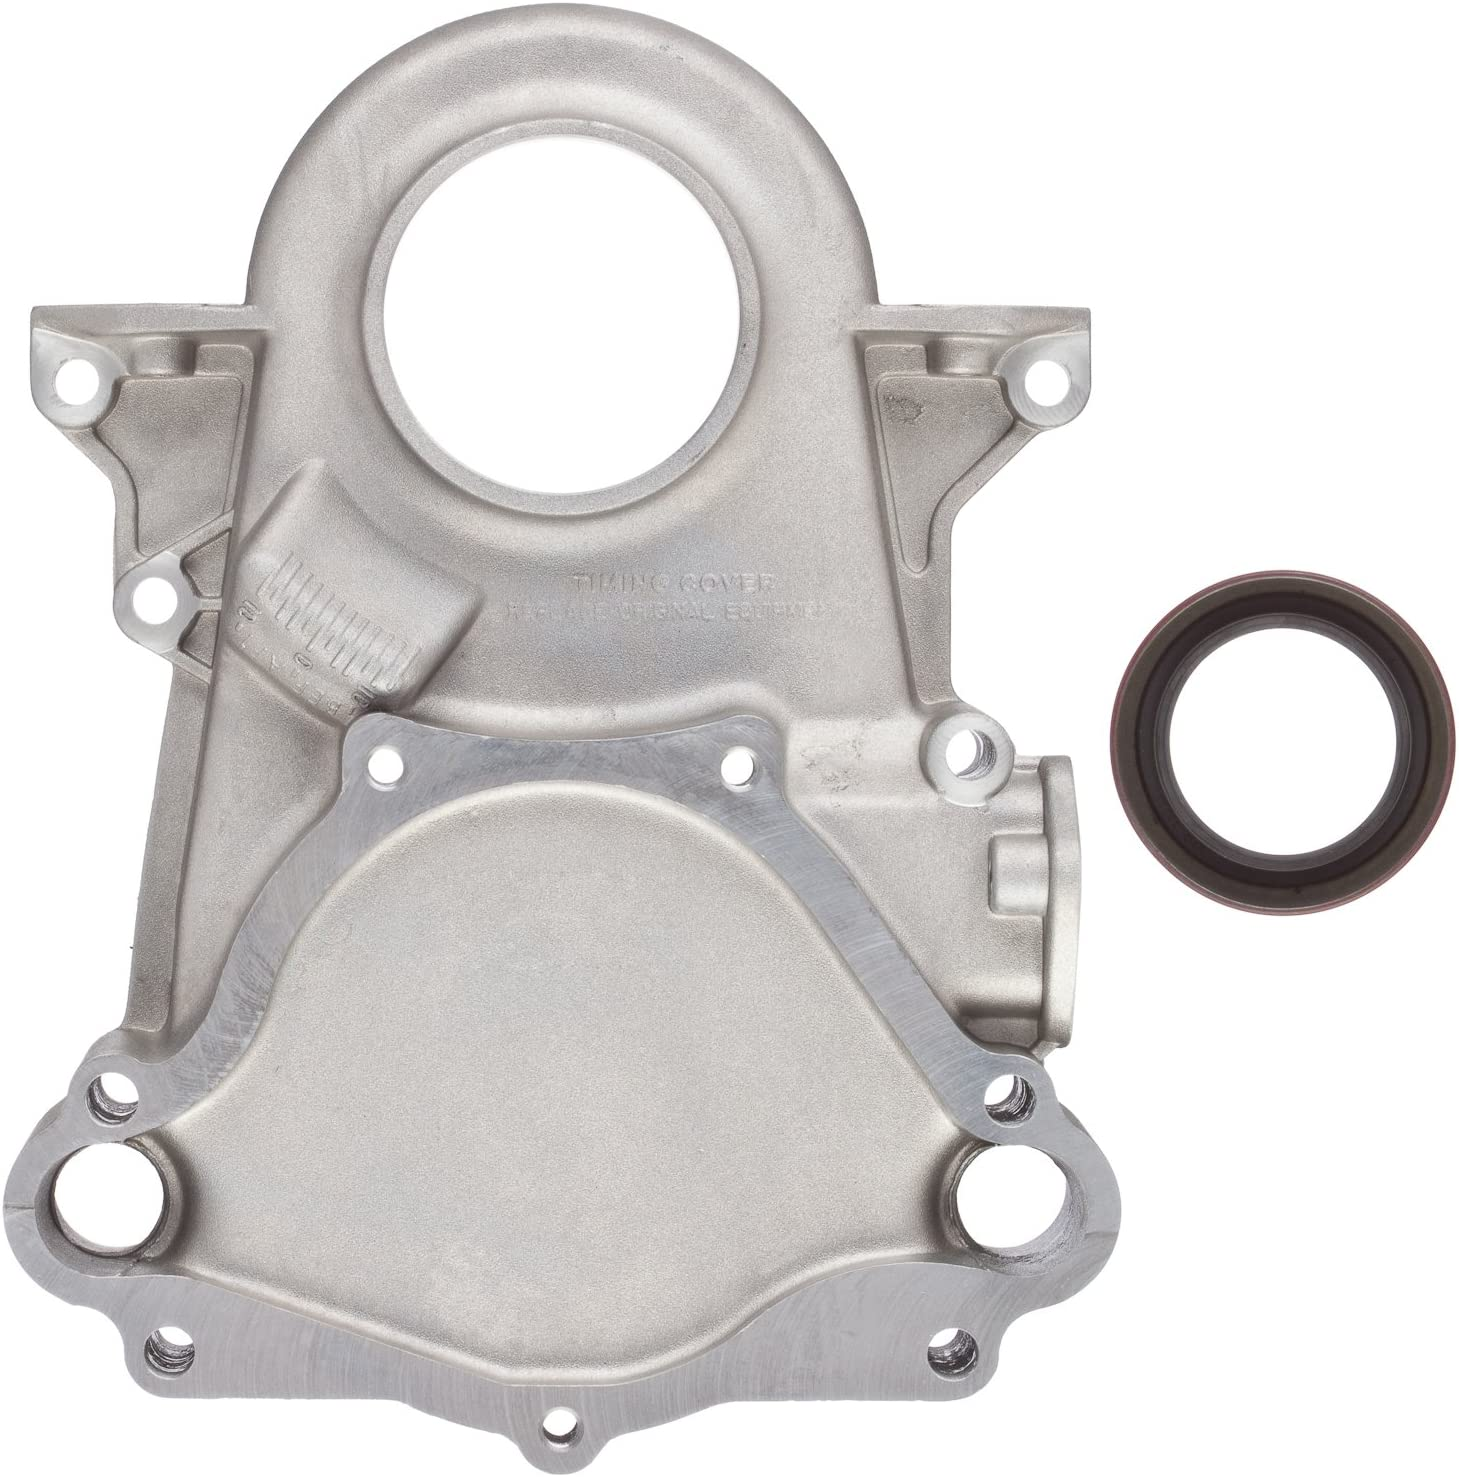 ATP Sale Special Price Automotive Graywerks 103001 Courier shipping free Timing Cover Engine